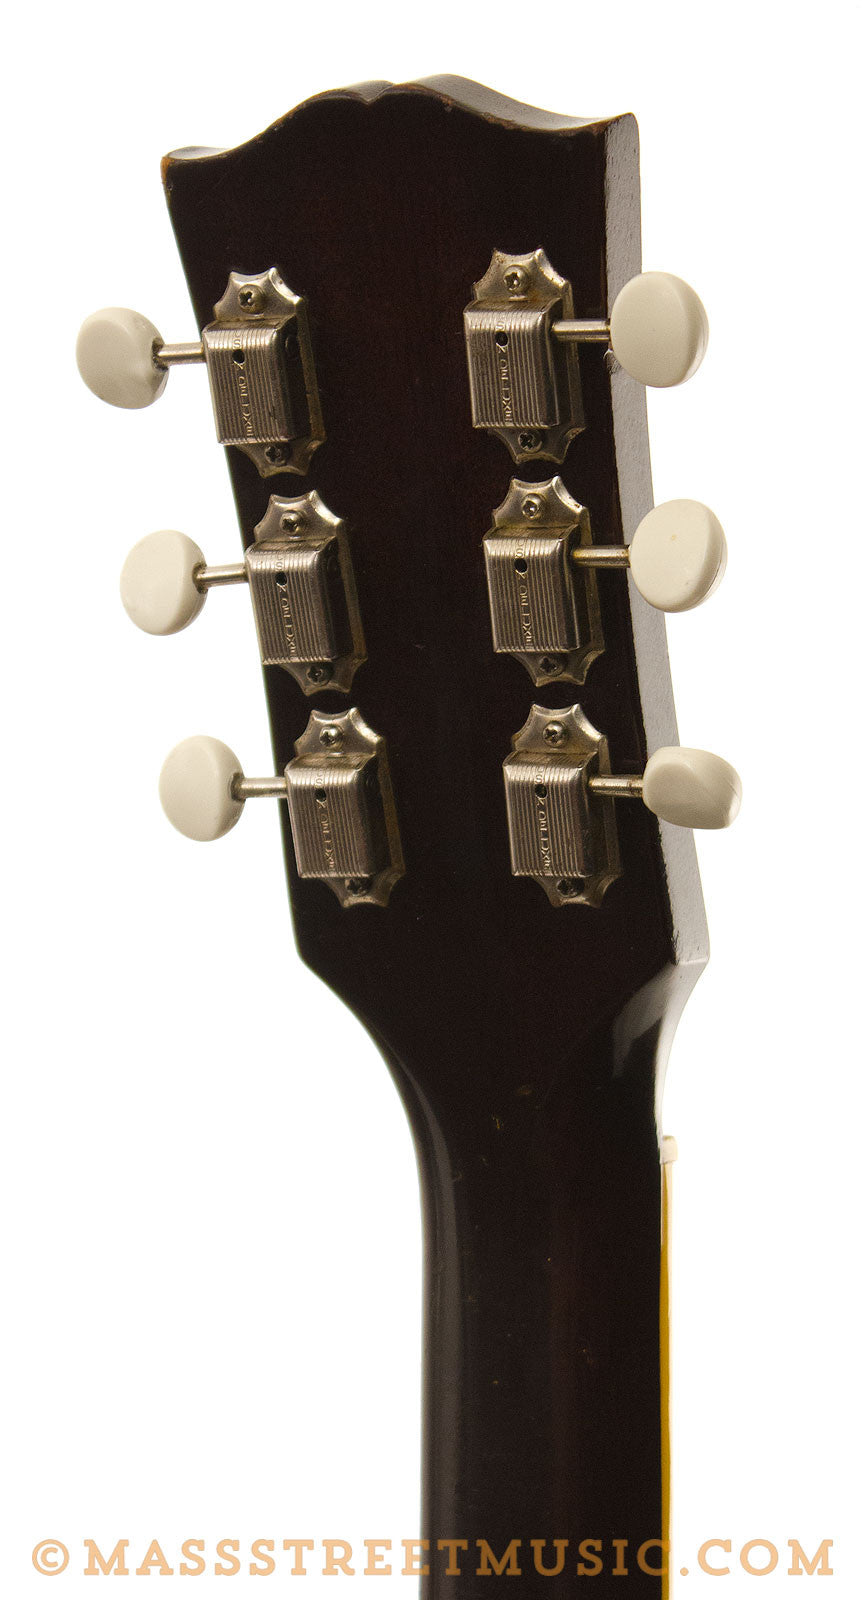 gibson vintage es 225t 1956 used thinline hollowbody electric guitar mass street music store. Black Bedroom Furniture Sets. Home Design Ideas